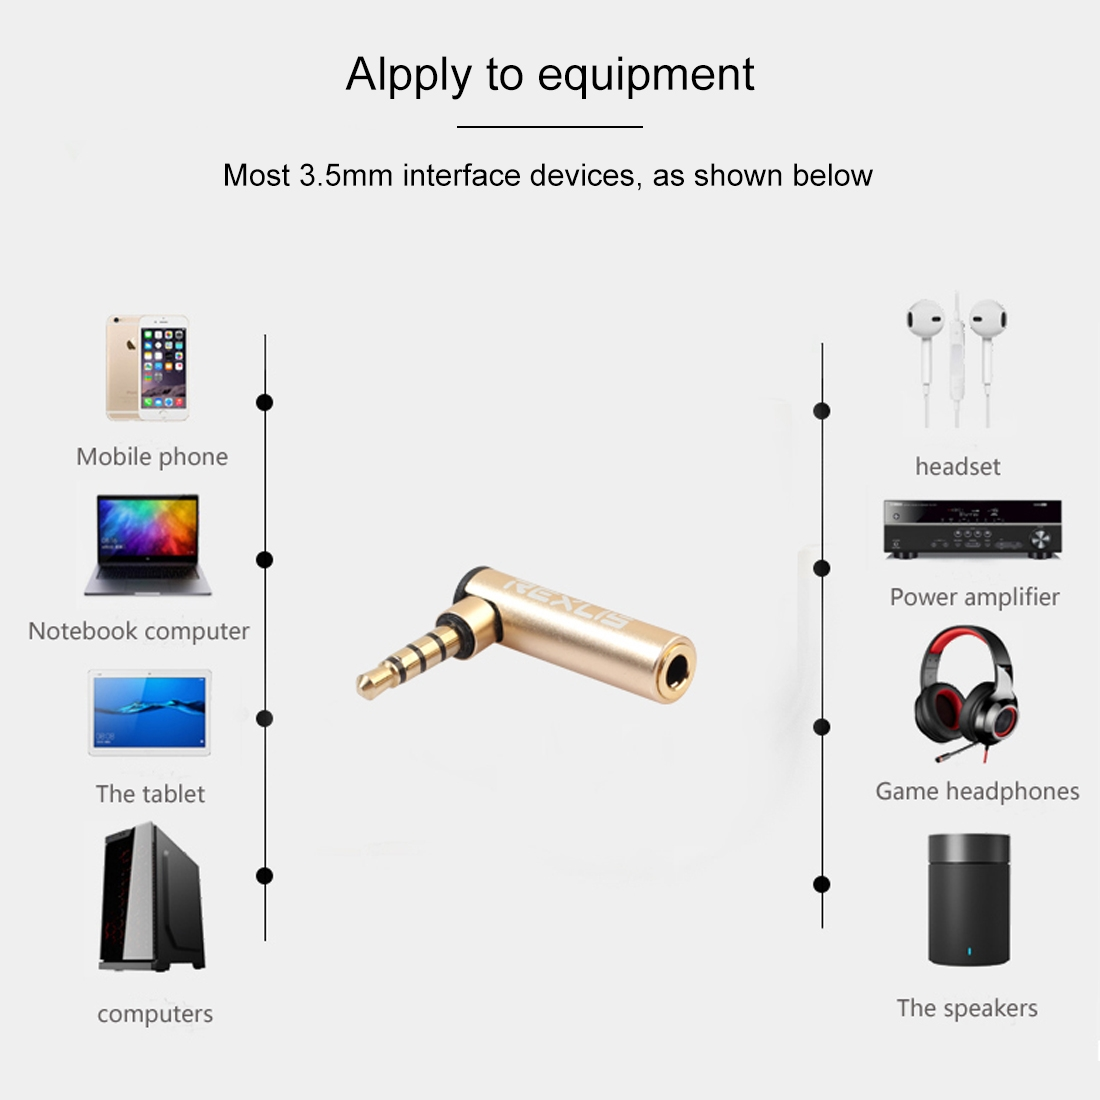 REXLIS BK3567 3.5mm Male + 3.5mm Female L-shaped 90 Degree Elbow Gold-plated Plug Gold Audio Interface Extension Adapter for 3.5mm Interface Devices, Support Earphones with Microphone